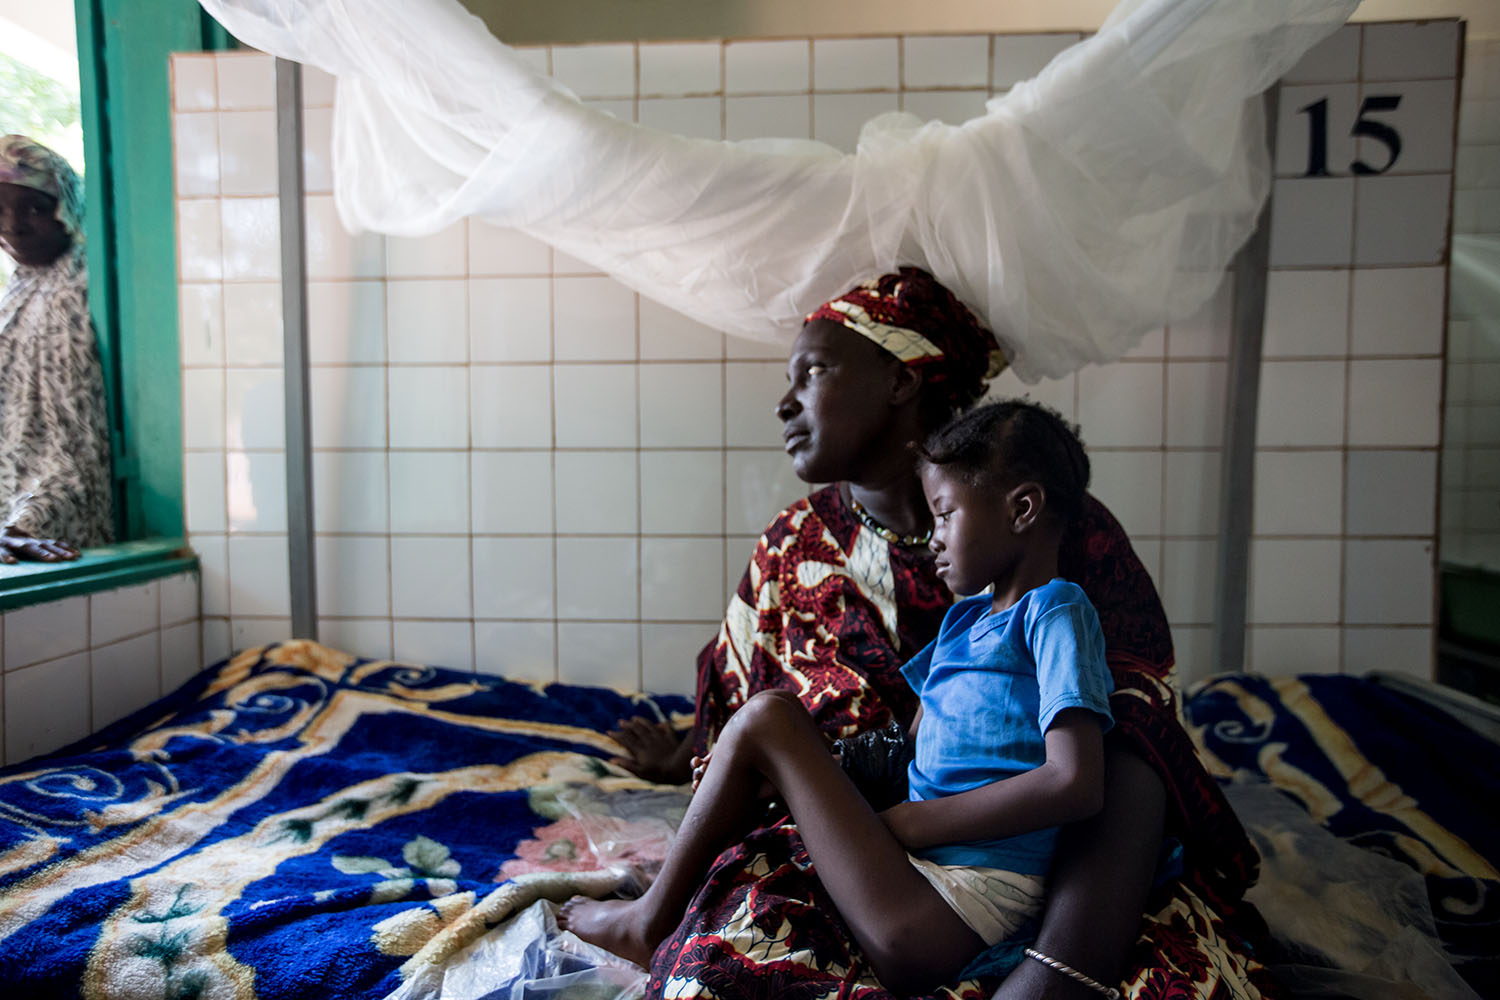 A mother and child at the local hospital where they are admitted and the child is treated for severe acute malnutrition. Chronic malnutrition has an irreversible impact on a child's growth and development. According to UNICEF, more than two in every thr